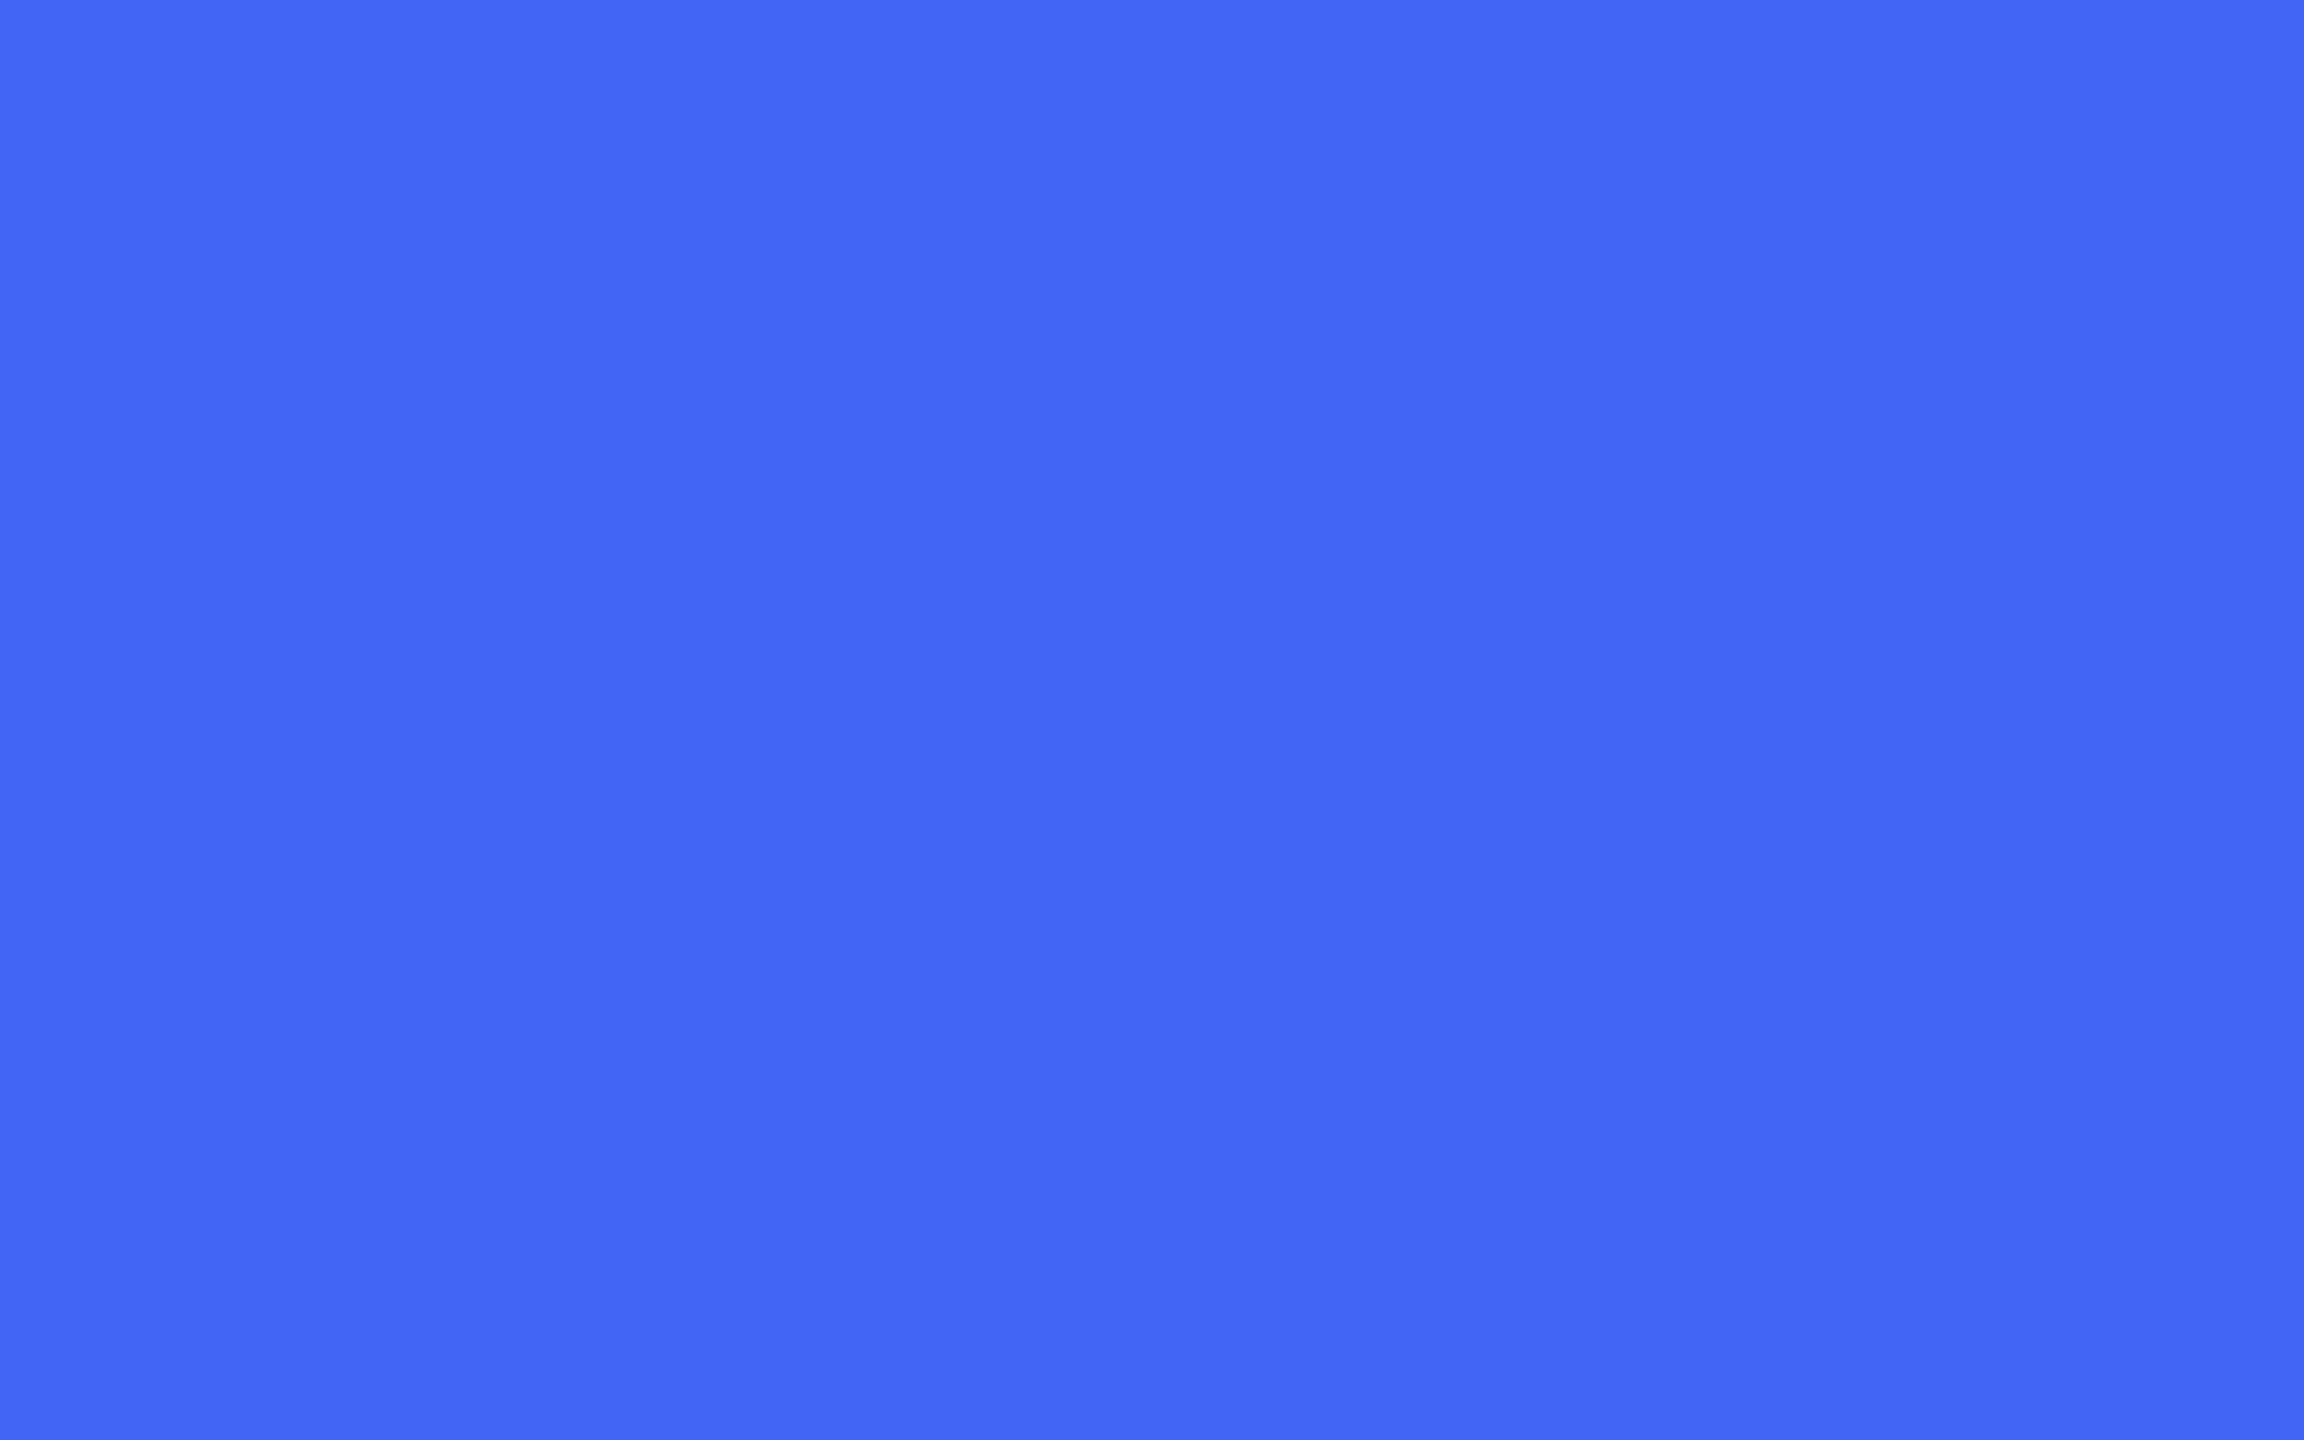 2304x1440 Ultramarine Blue Solid Color Background